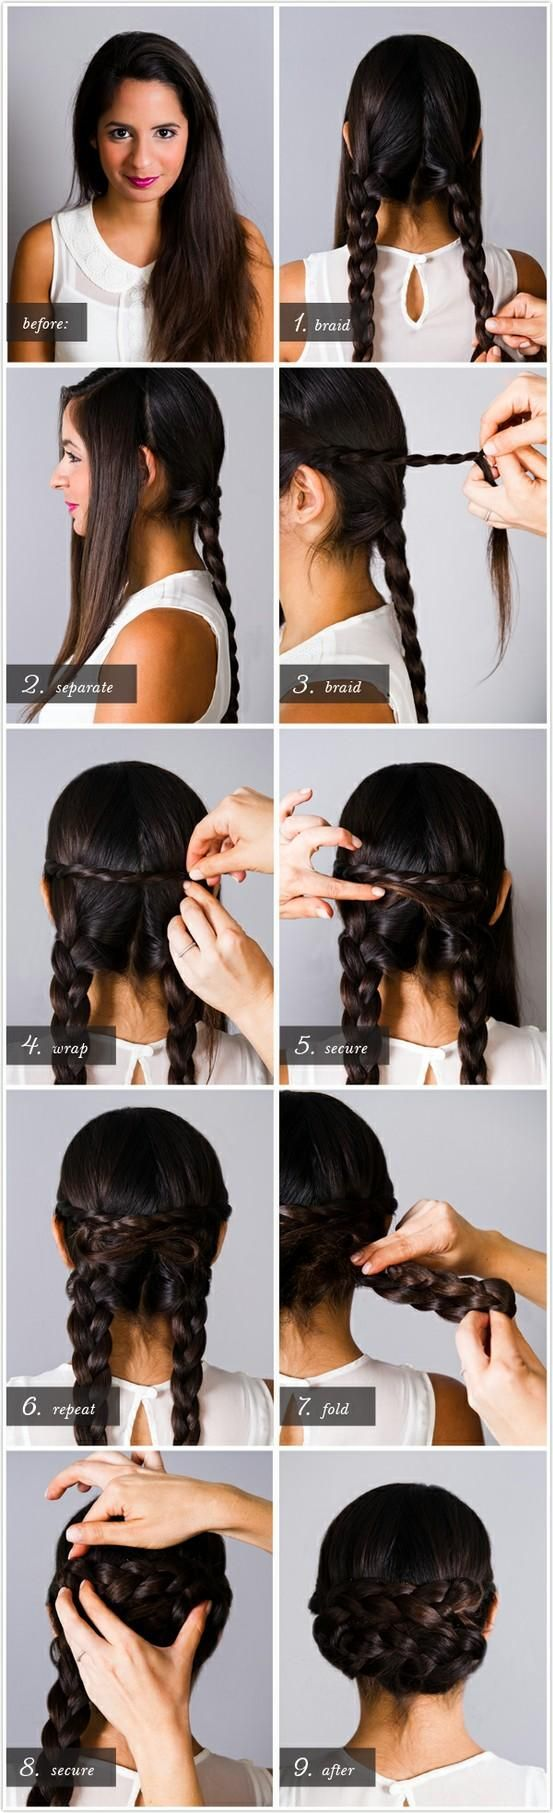 Braided Chignon Tutorial | Hair and Beauty Tutorials